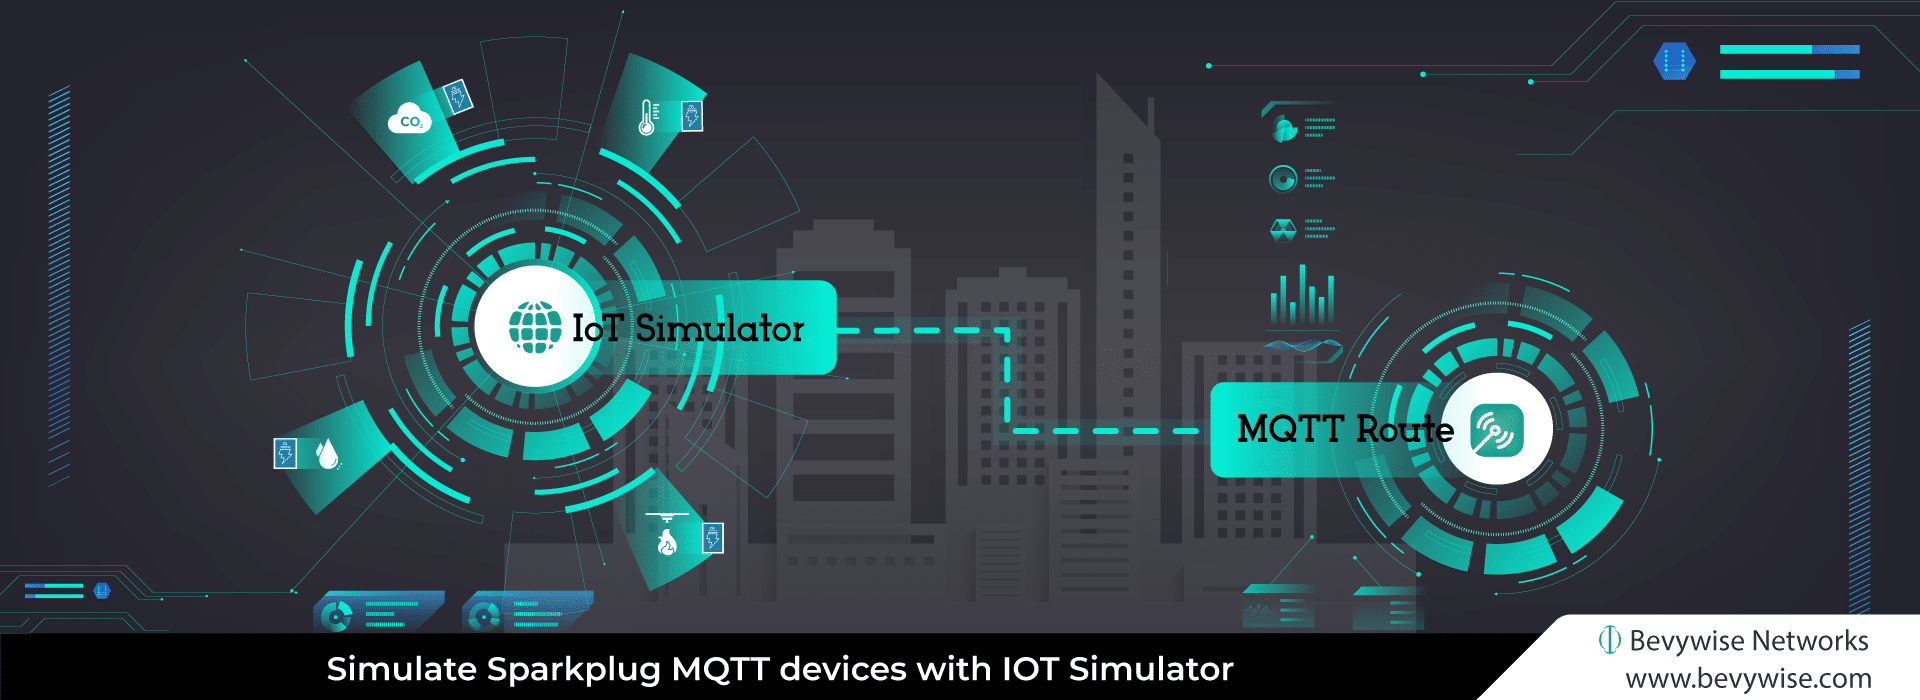 Sparkplug B MQTT Simulation using IoT Simulator - Bevywise Networks